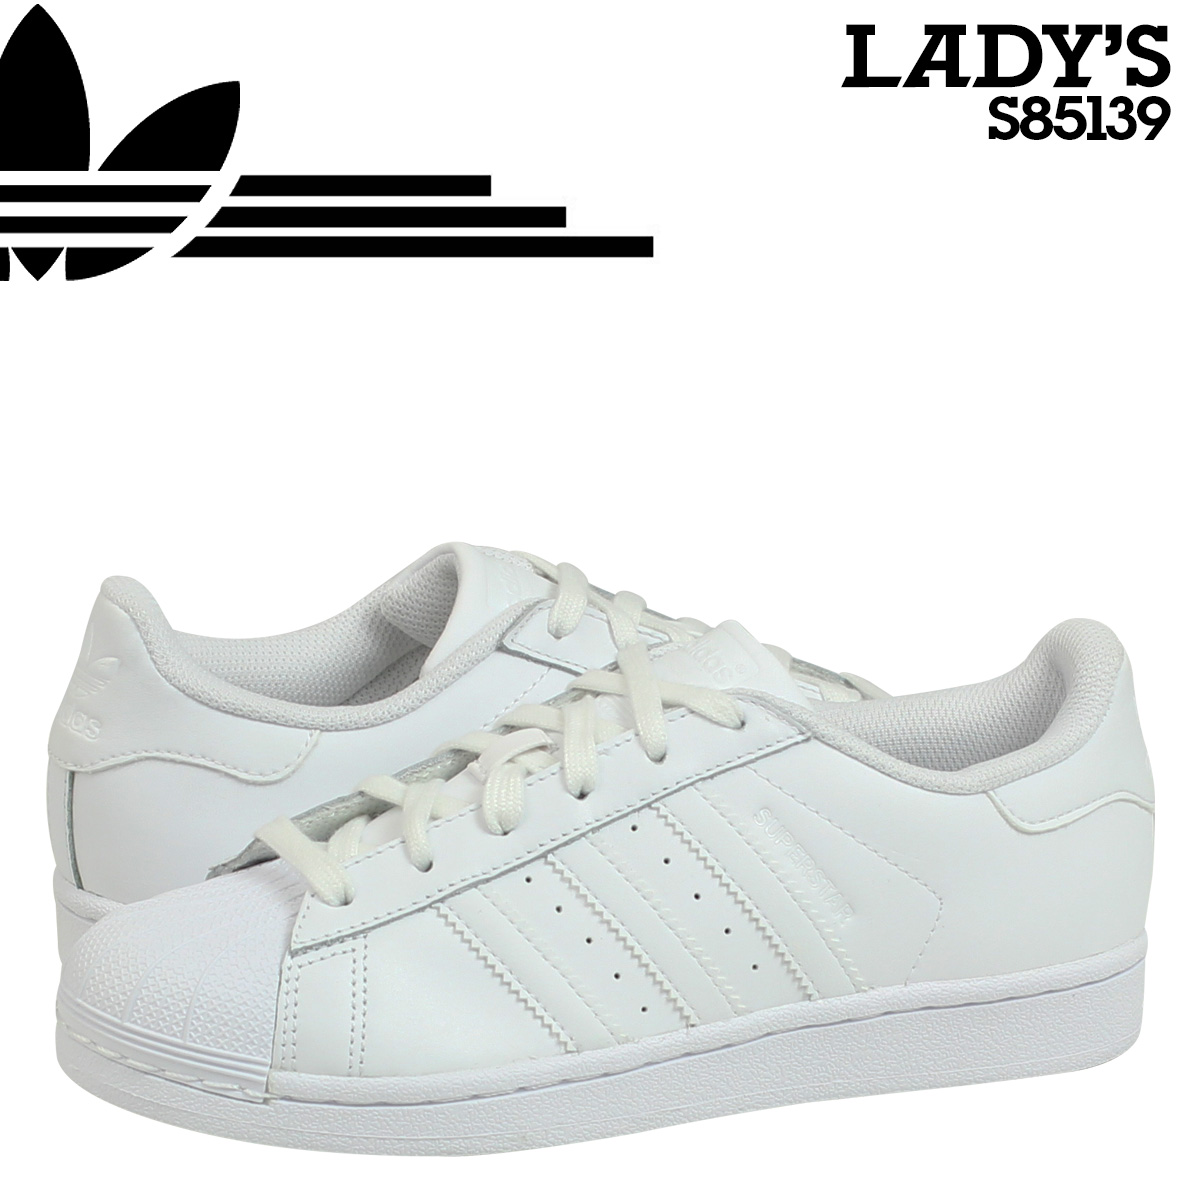 Added Originals Stock Women Womens Superstar W White810 Sneakers S85139 Adidas Shoes In BsdChQrxto